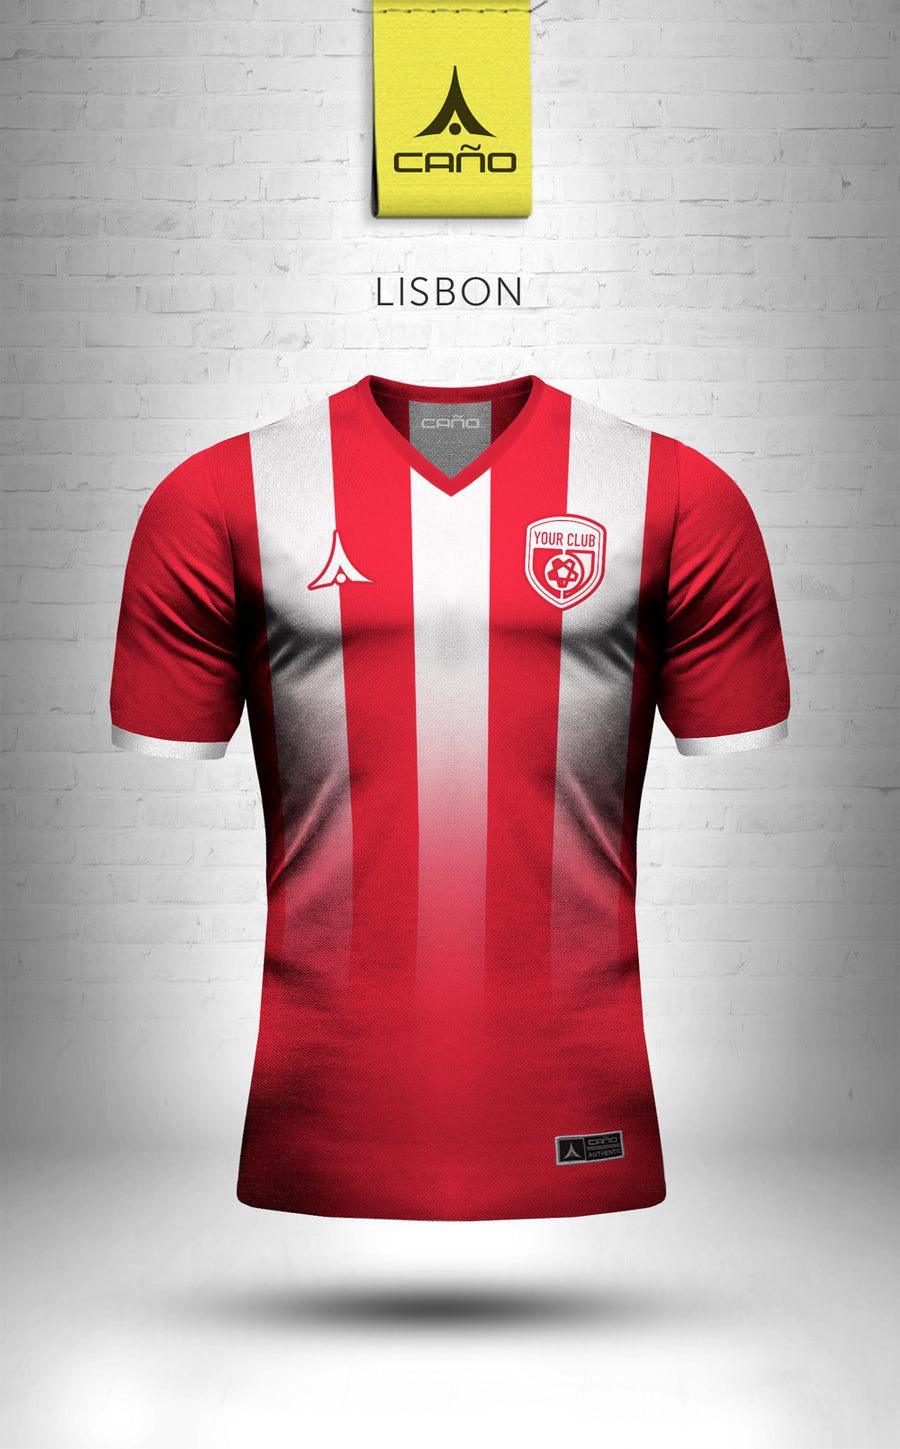 Lisbon in red/white